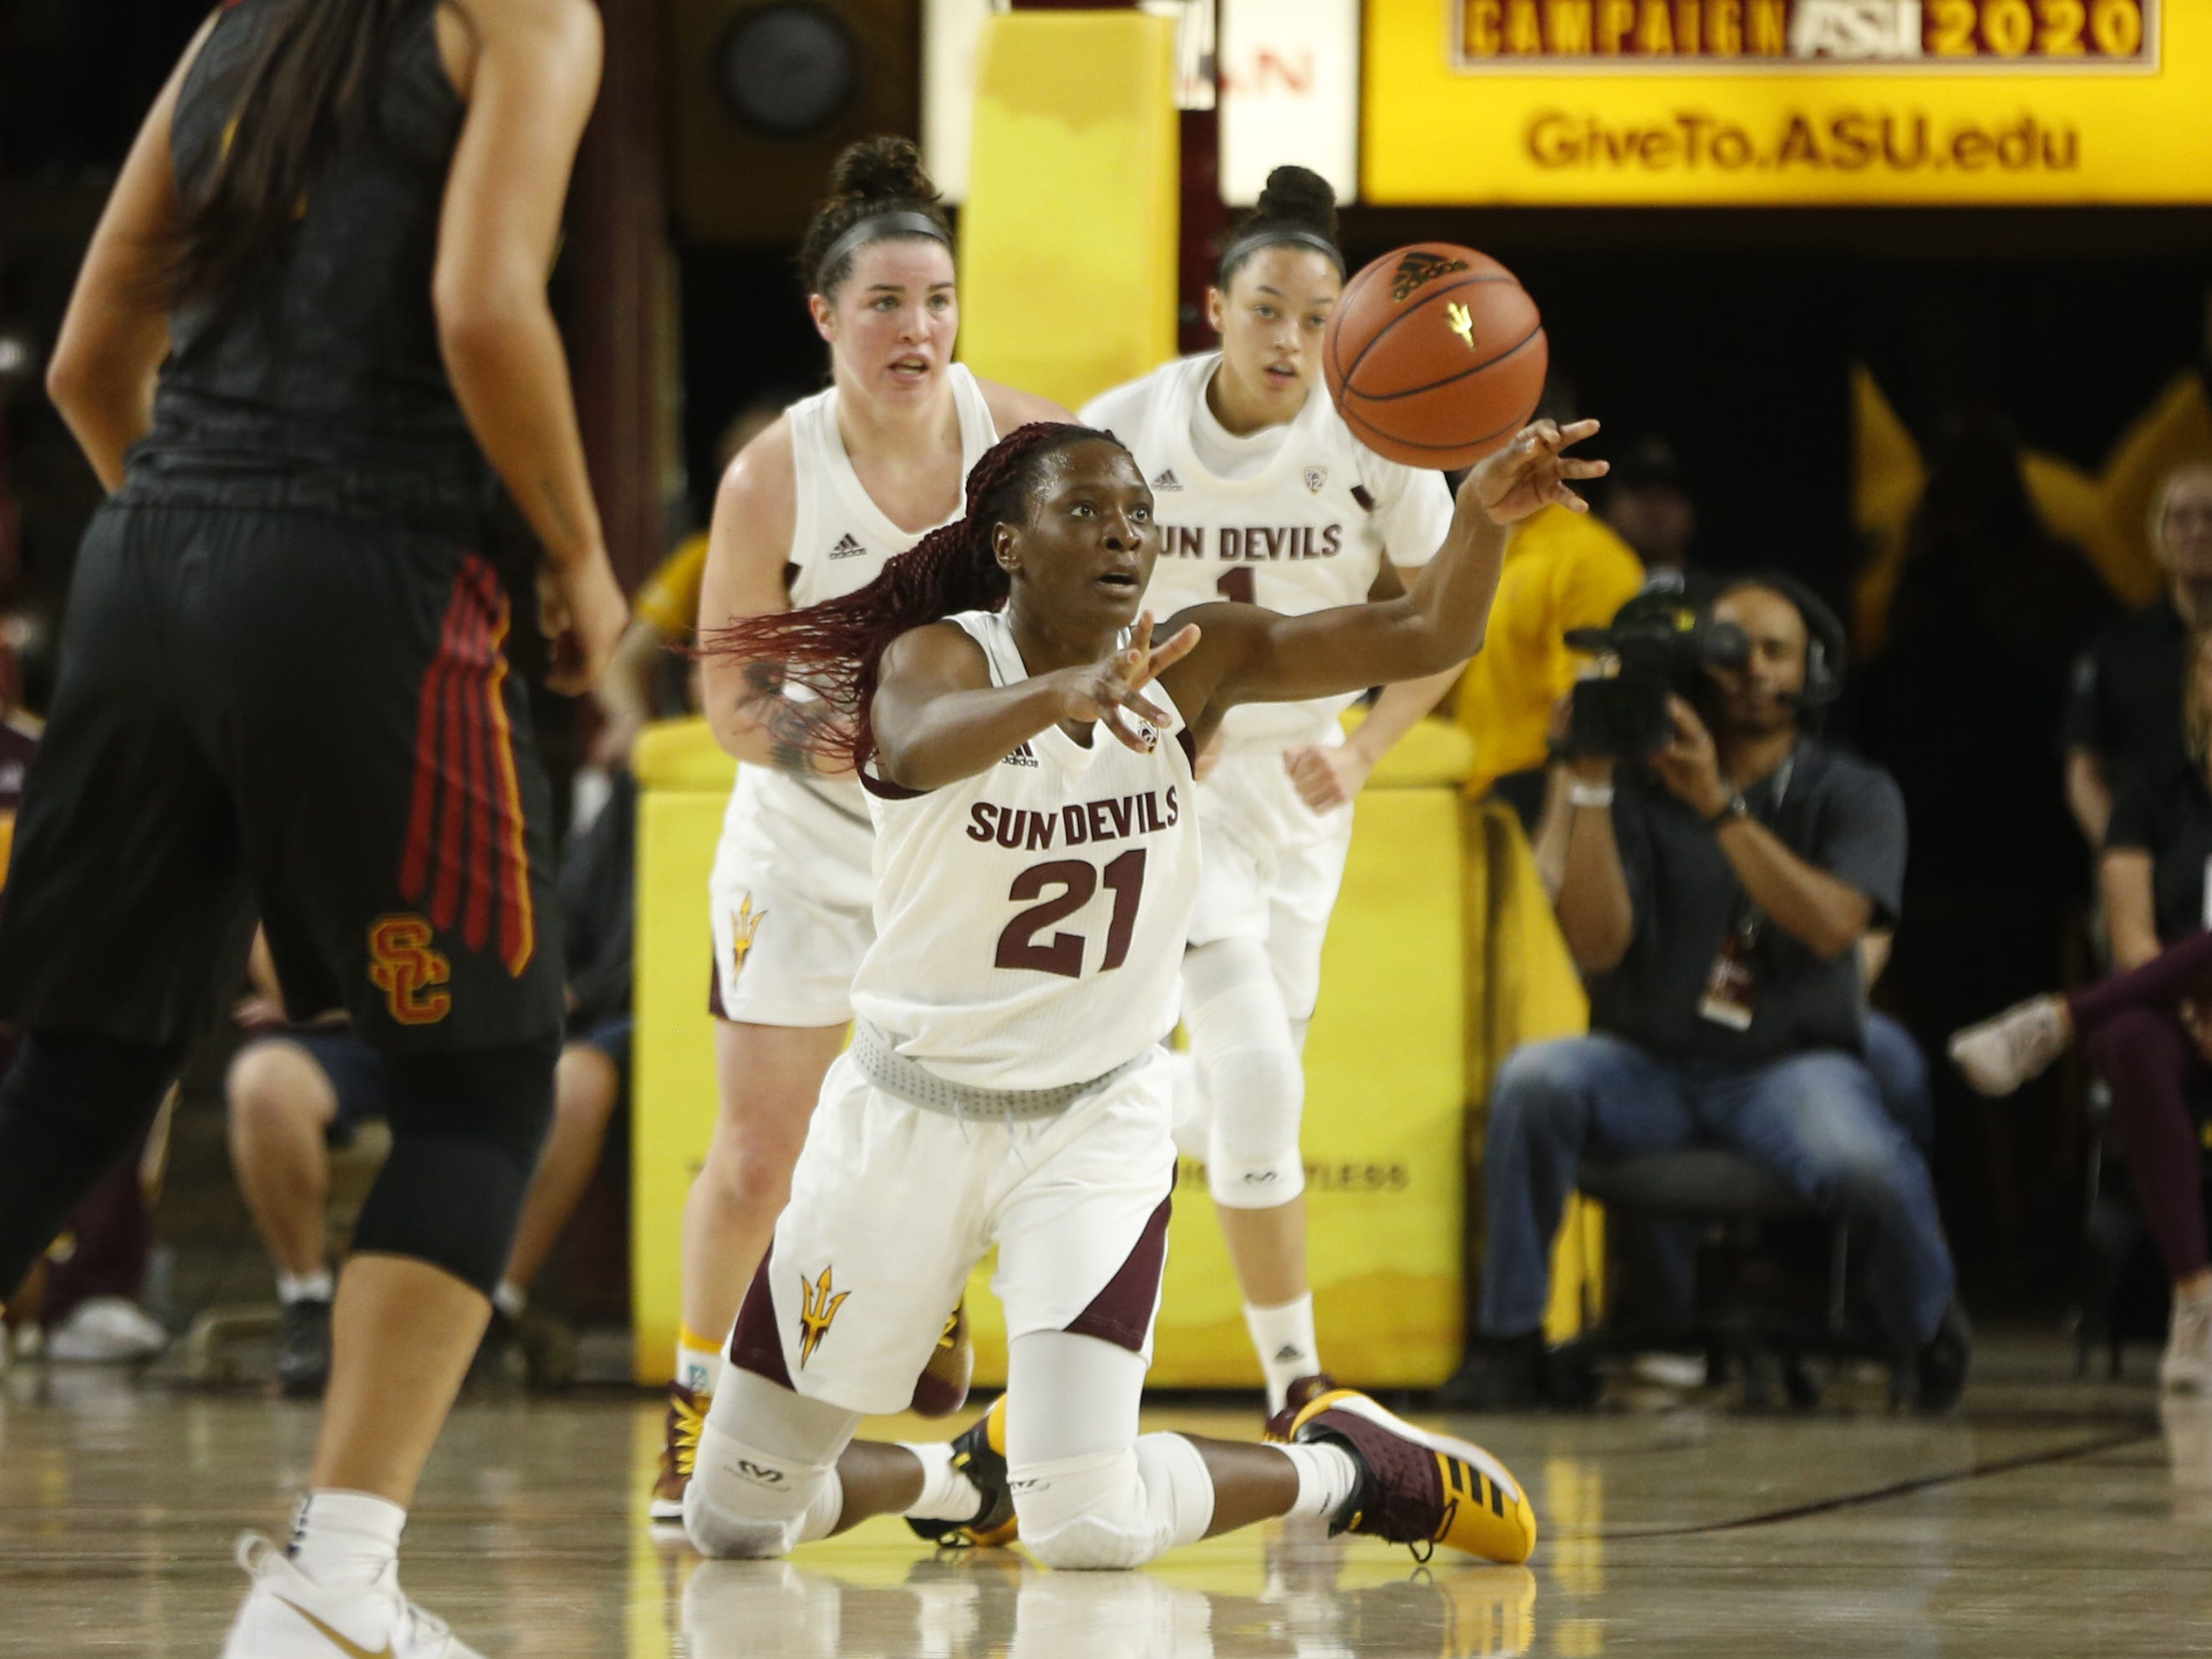 ASU's Sophia Elenga (21) makes a pass fro the floor against USC during the second half at Wells Fargo Arena in Tempe, Ariz. on January 27, 2019.